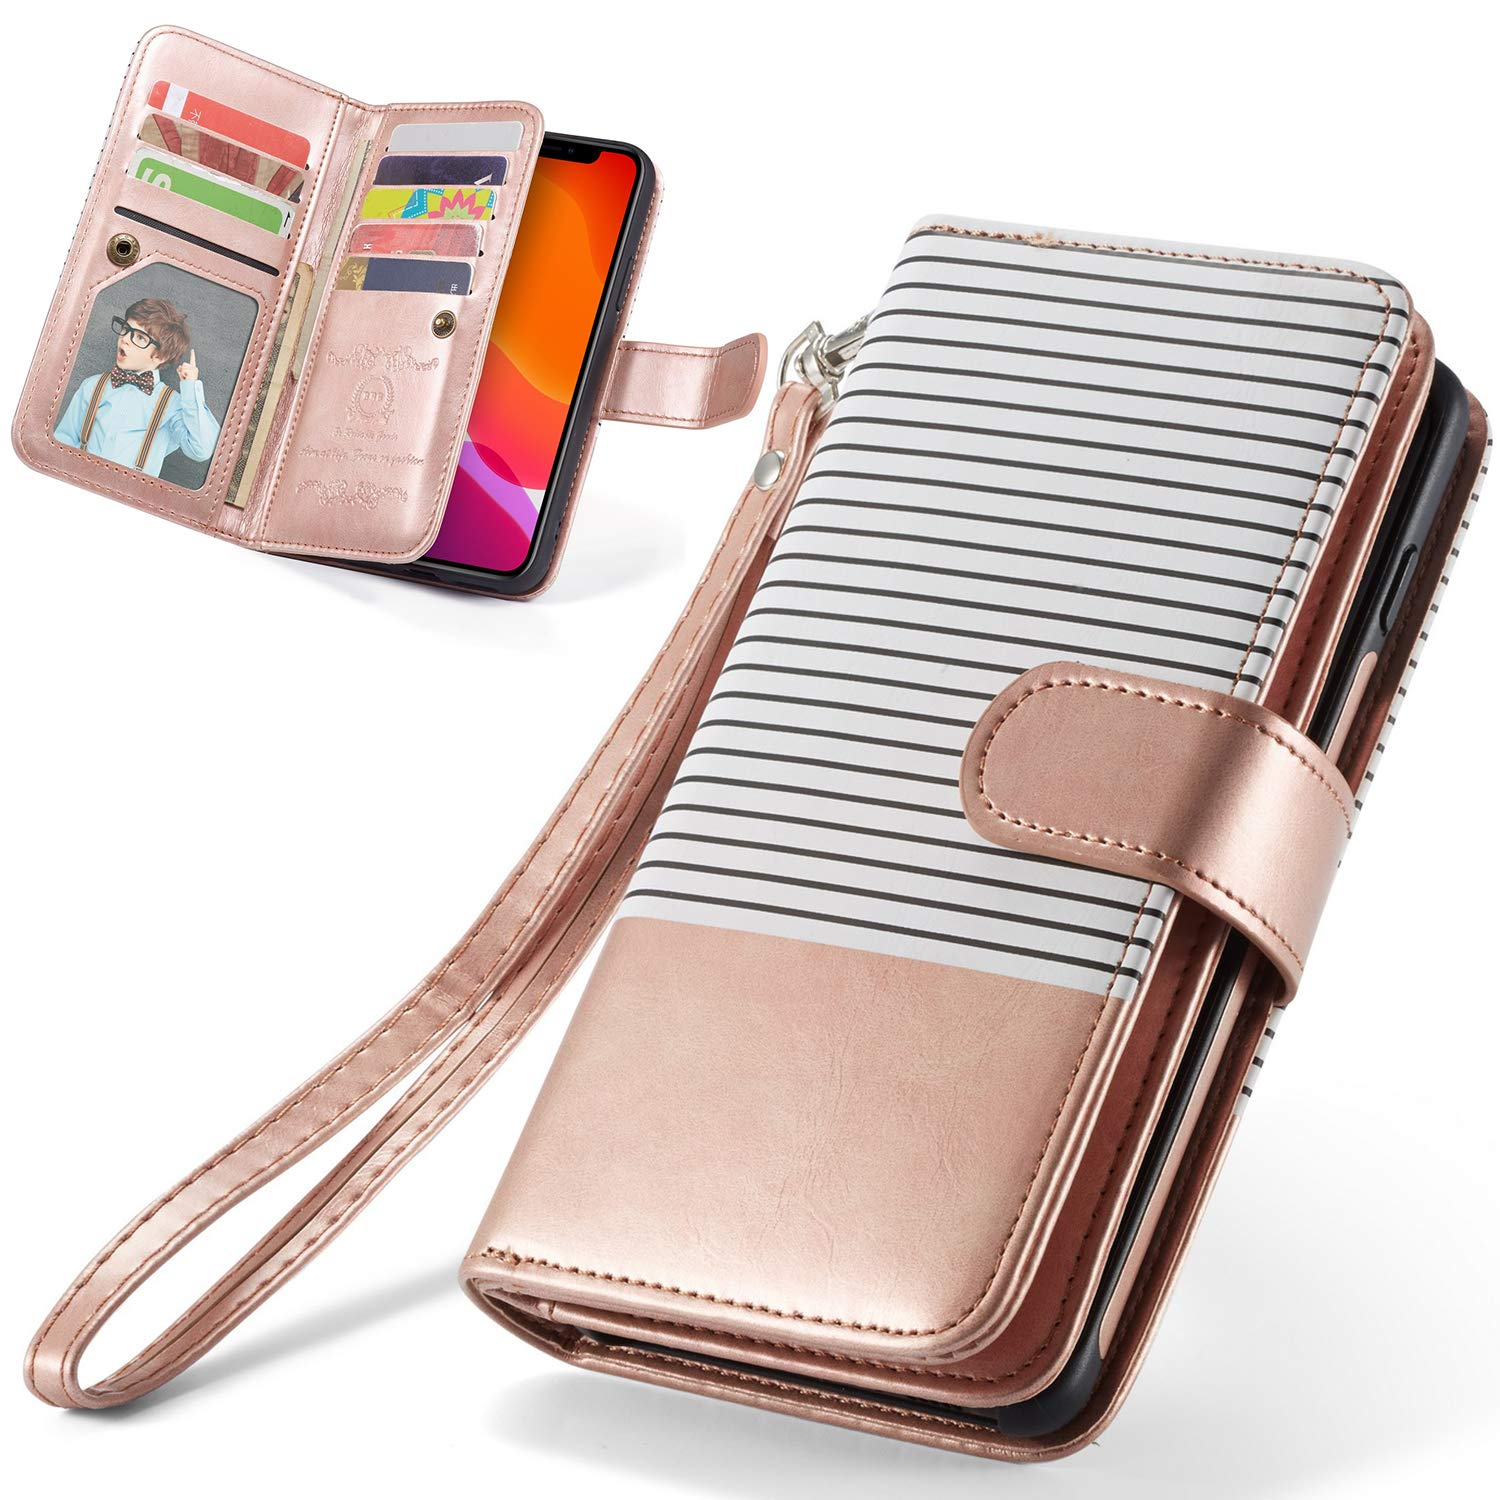 iPhone 11 Pro Wallet Case, iPhone 11 Pro Case XRPow [2 in 1] Magnetic Detachable Wallet Case [PU Leather] Folio Flip [9 Card Slot] [Wrist Strap] Durable Protection Cover for iPhone 11Pro 5.8Inch Gold